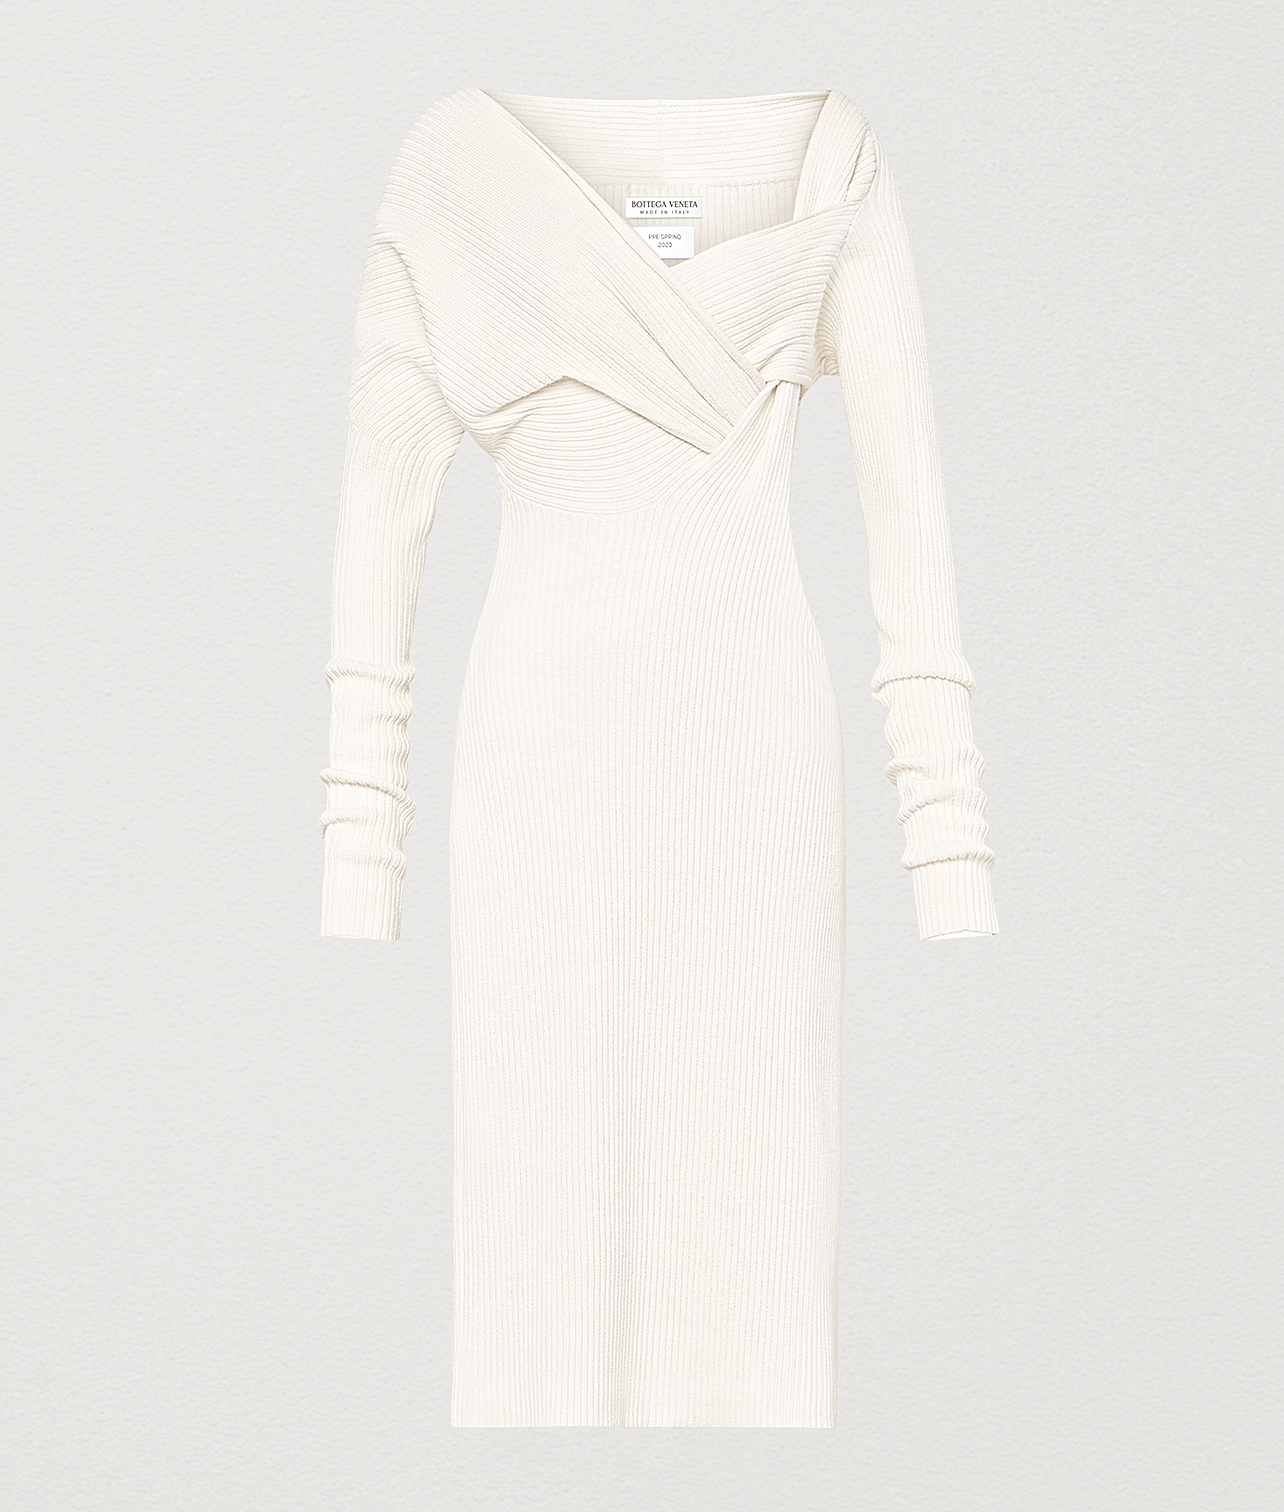 Exact Product: Kylie Jenner Off White Off-Shoulder Sweater Dress Party Autumn Winter 2020, Brand: Bottega Veneta, Available on: bottegaveneta.com, Price: $2560